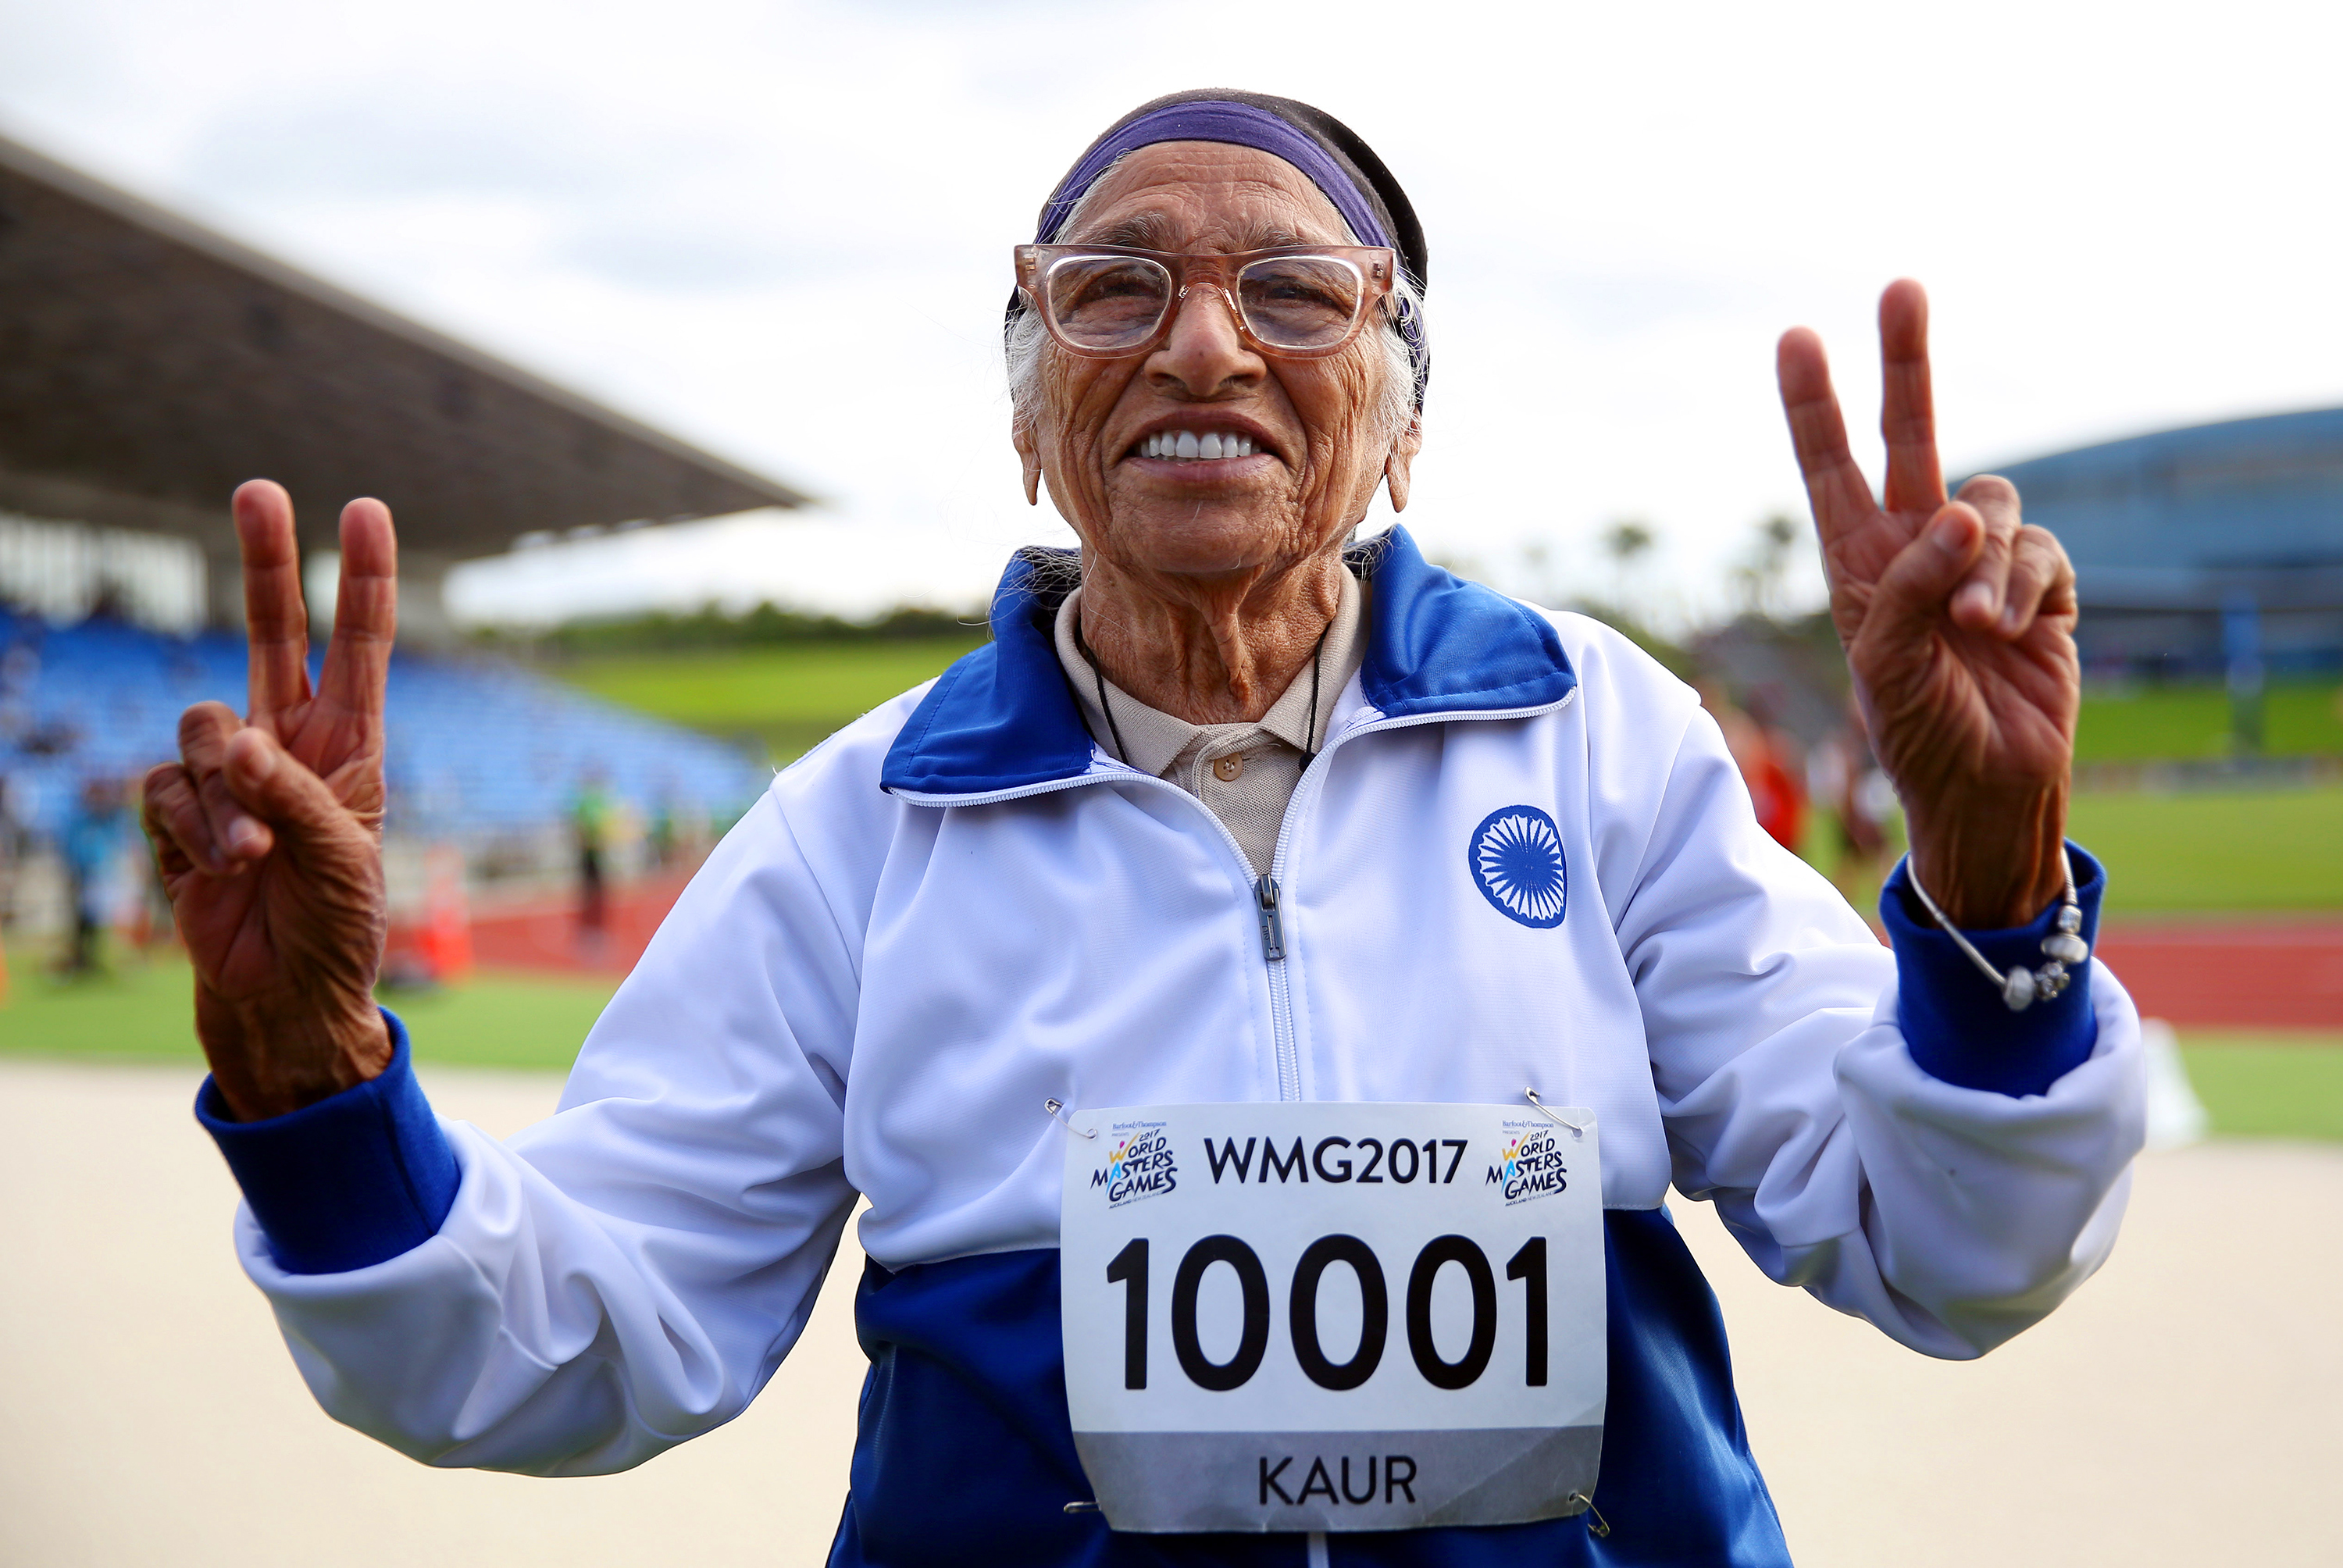 Secrets Of Success From A 102-Year-Old Runner